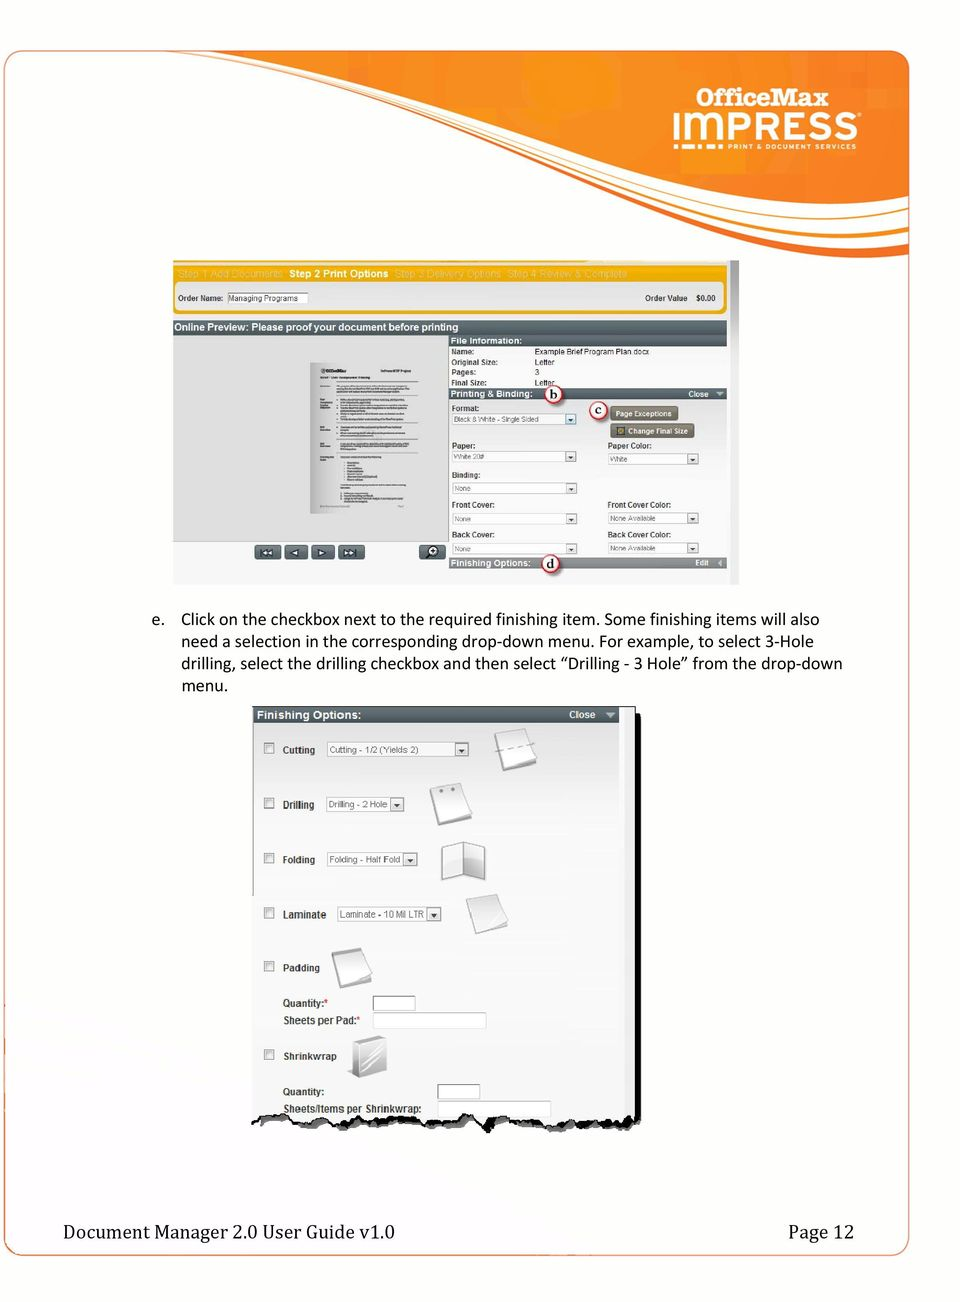 menu. For example, to select 3 Hole drilling, select the drilling checkbox and